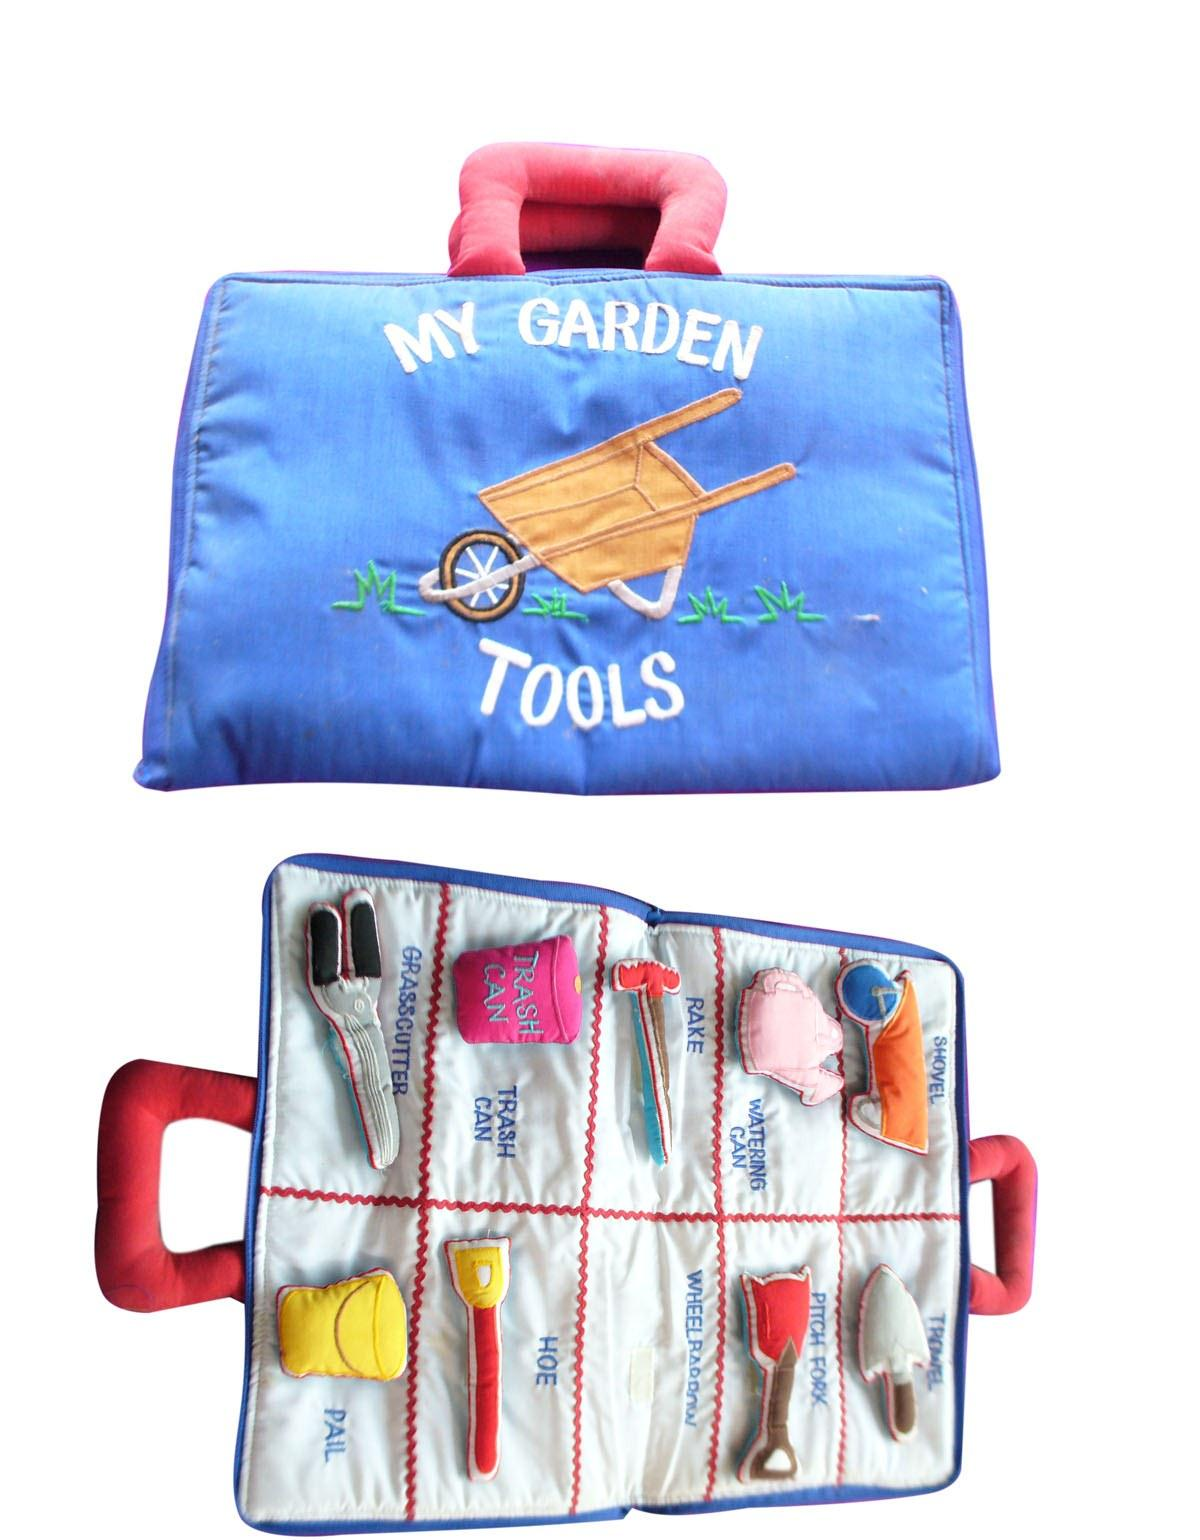 My Garden Tools Bag 533